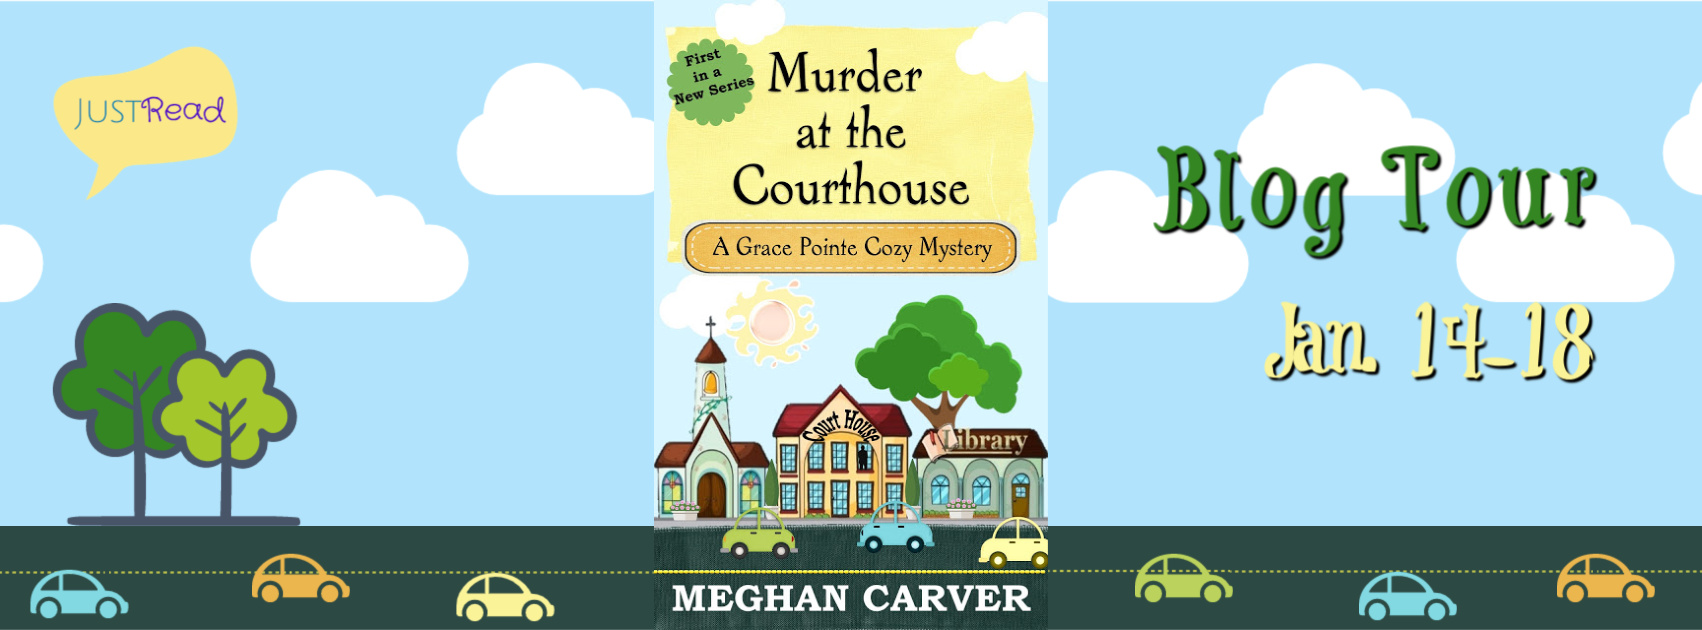 Welcome to the Murder at the Courthouse Blog Tour & Giveaway!